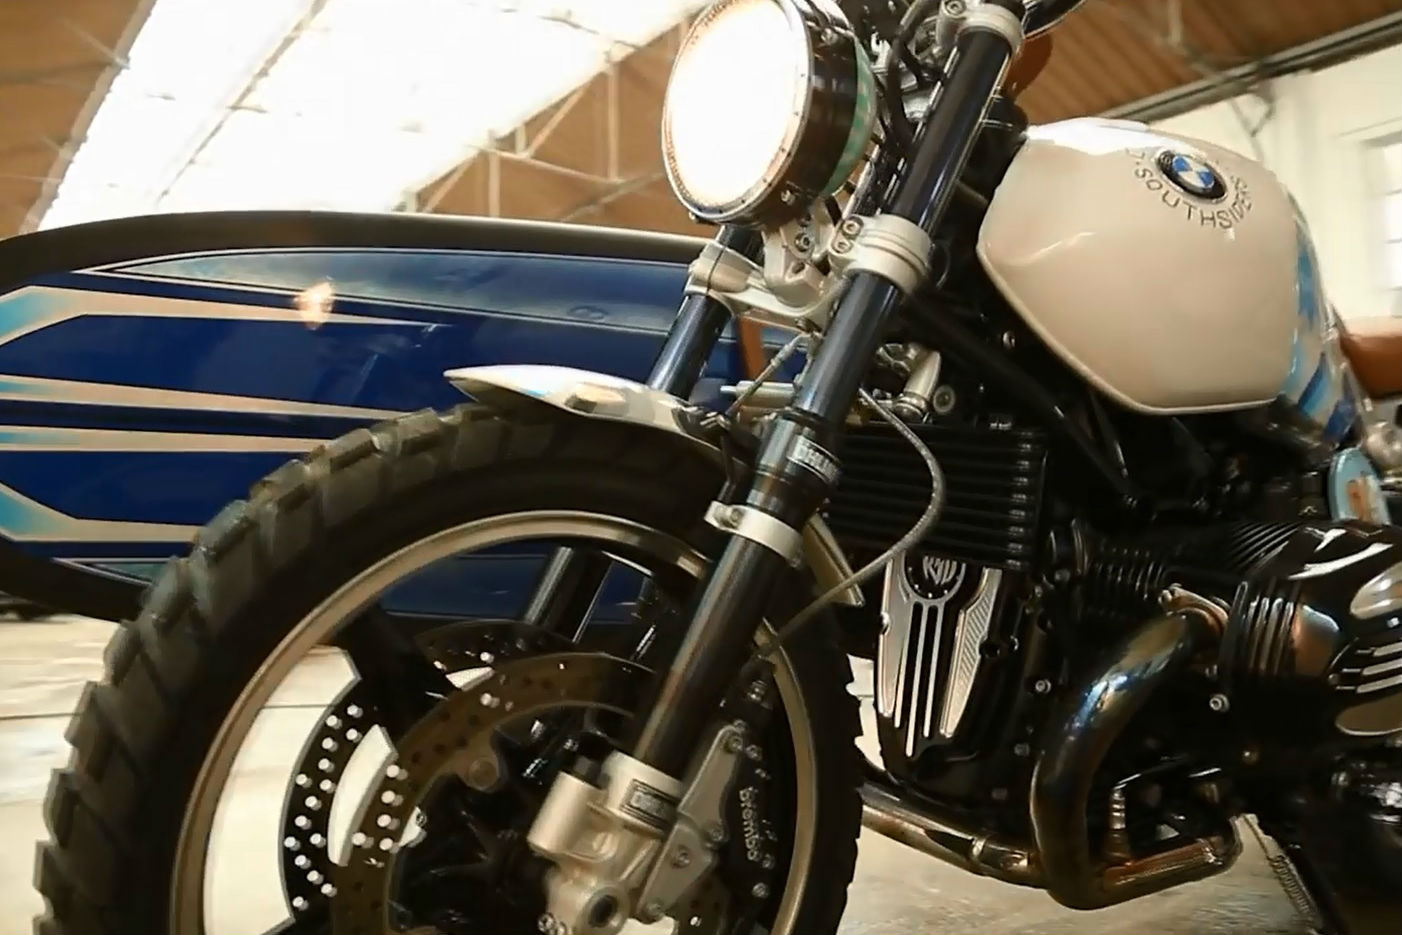 BMW R nineT scrambler walk-around video